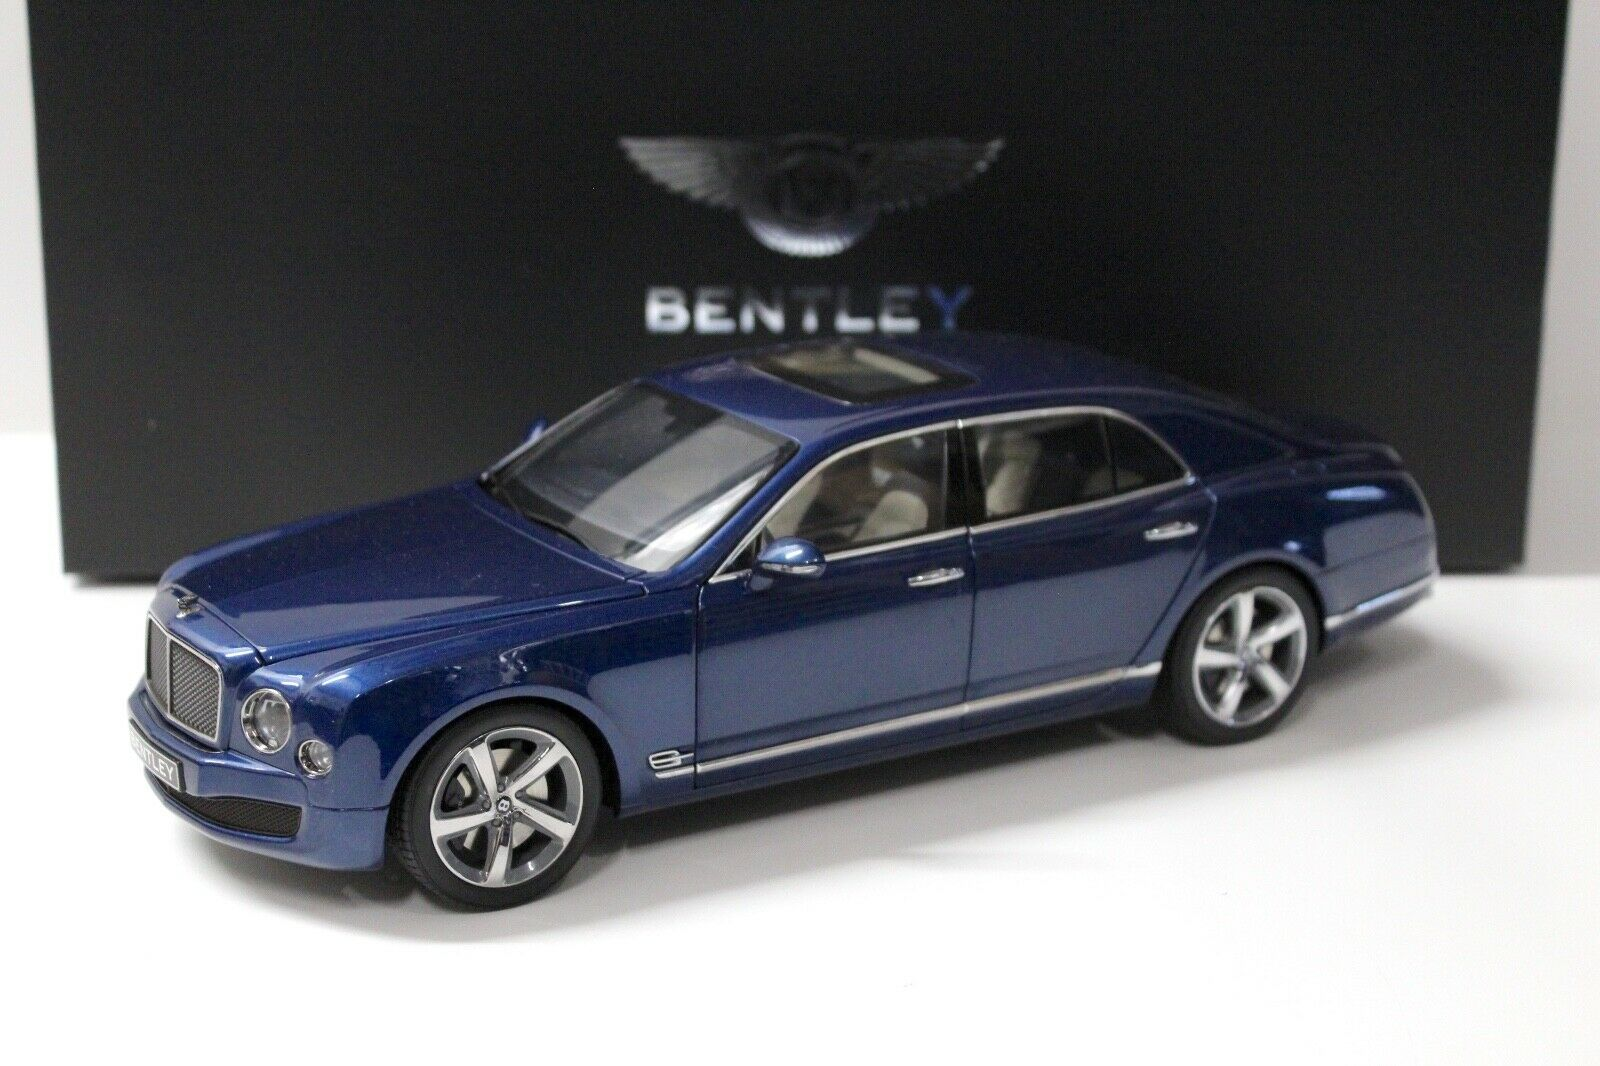 1 18 Kyosho Bentley mulsanne Speed Marlin blu dealer New en Premium-modelcars